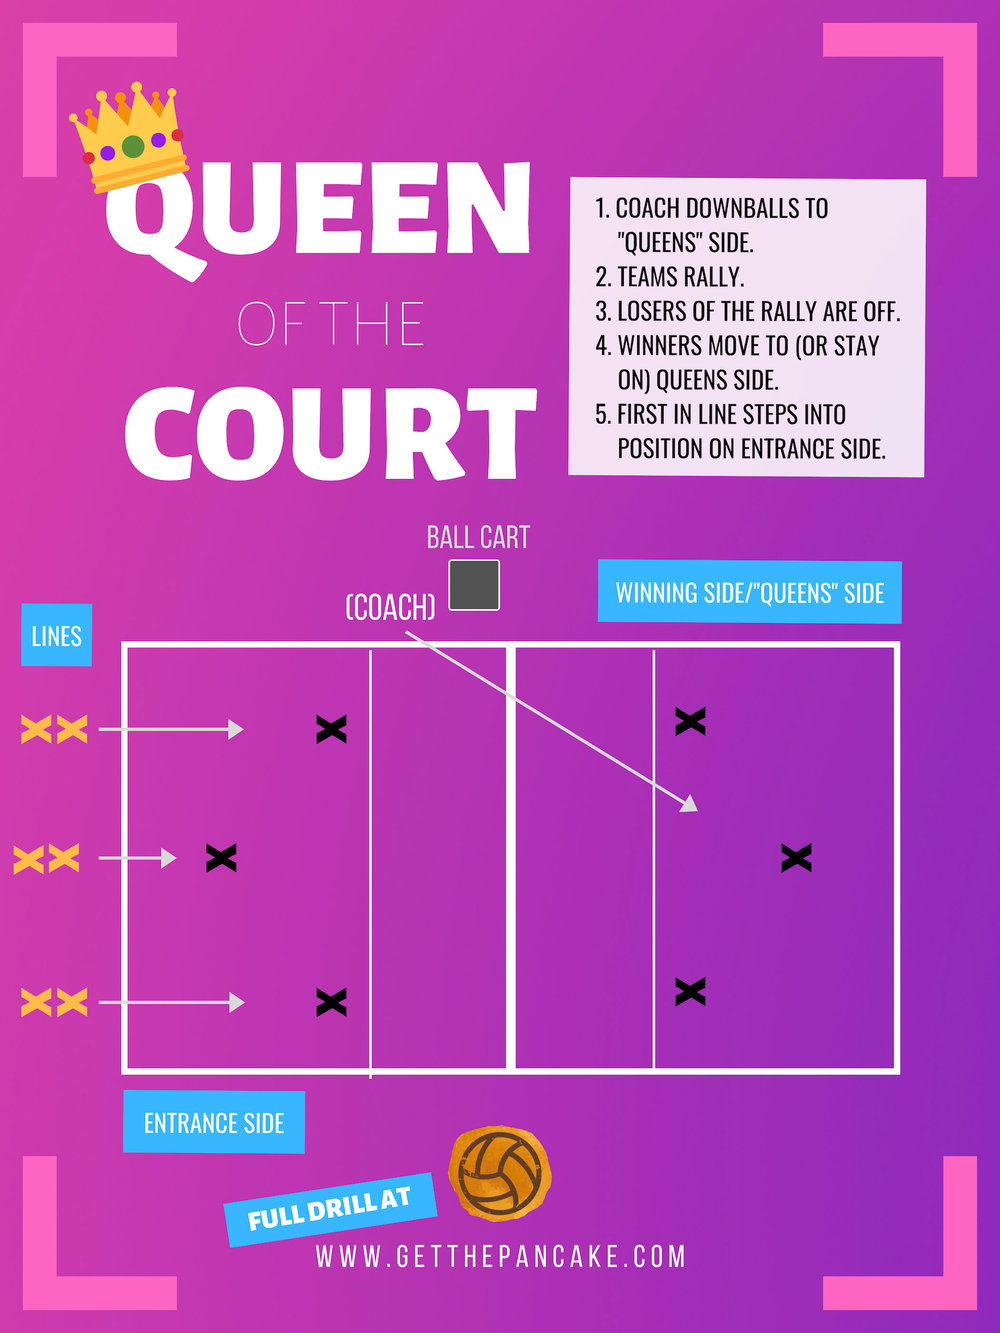 QUEEN OF THE COURT VOLLEYBALL DRILL GET THE PANCAKE.jpg